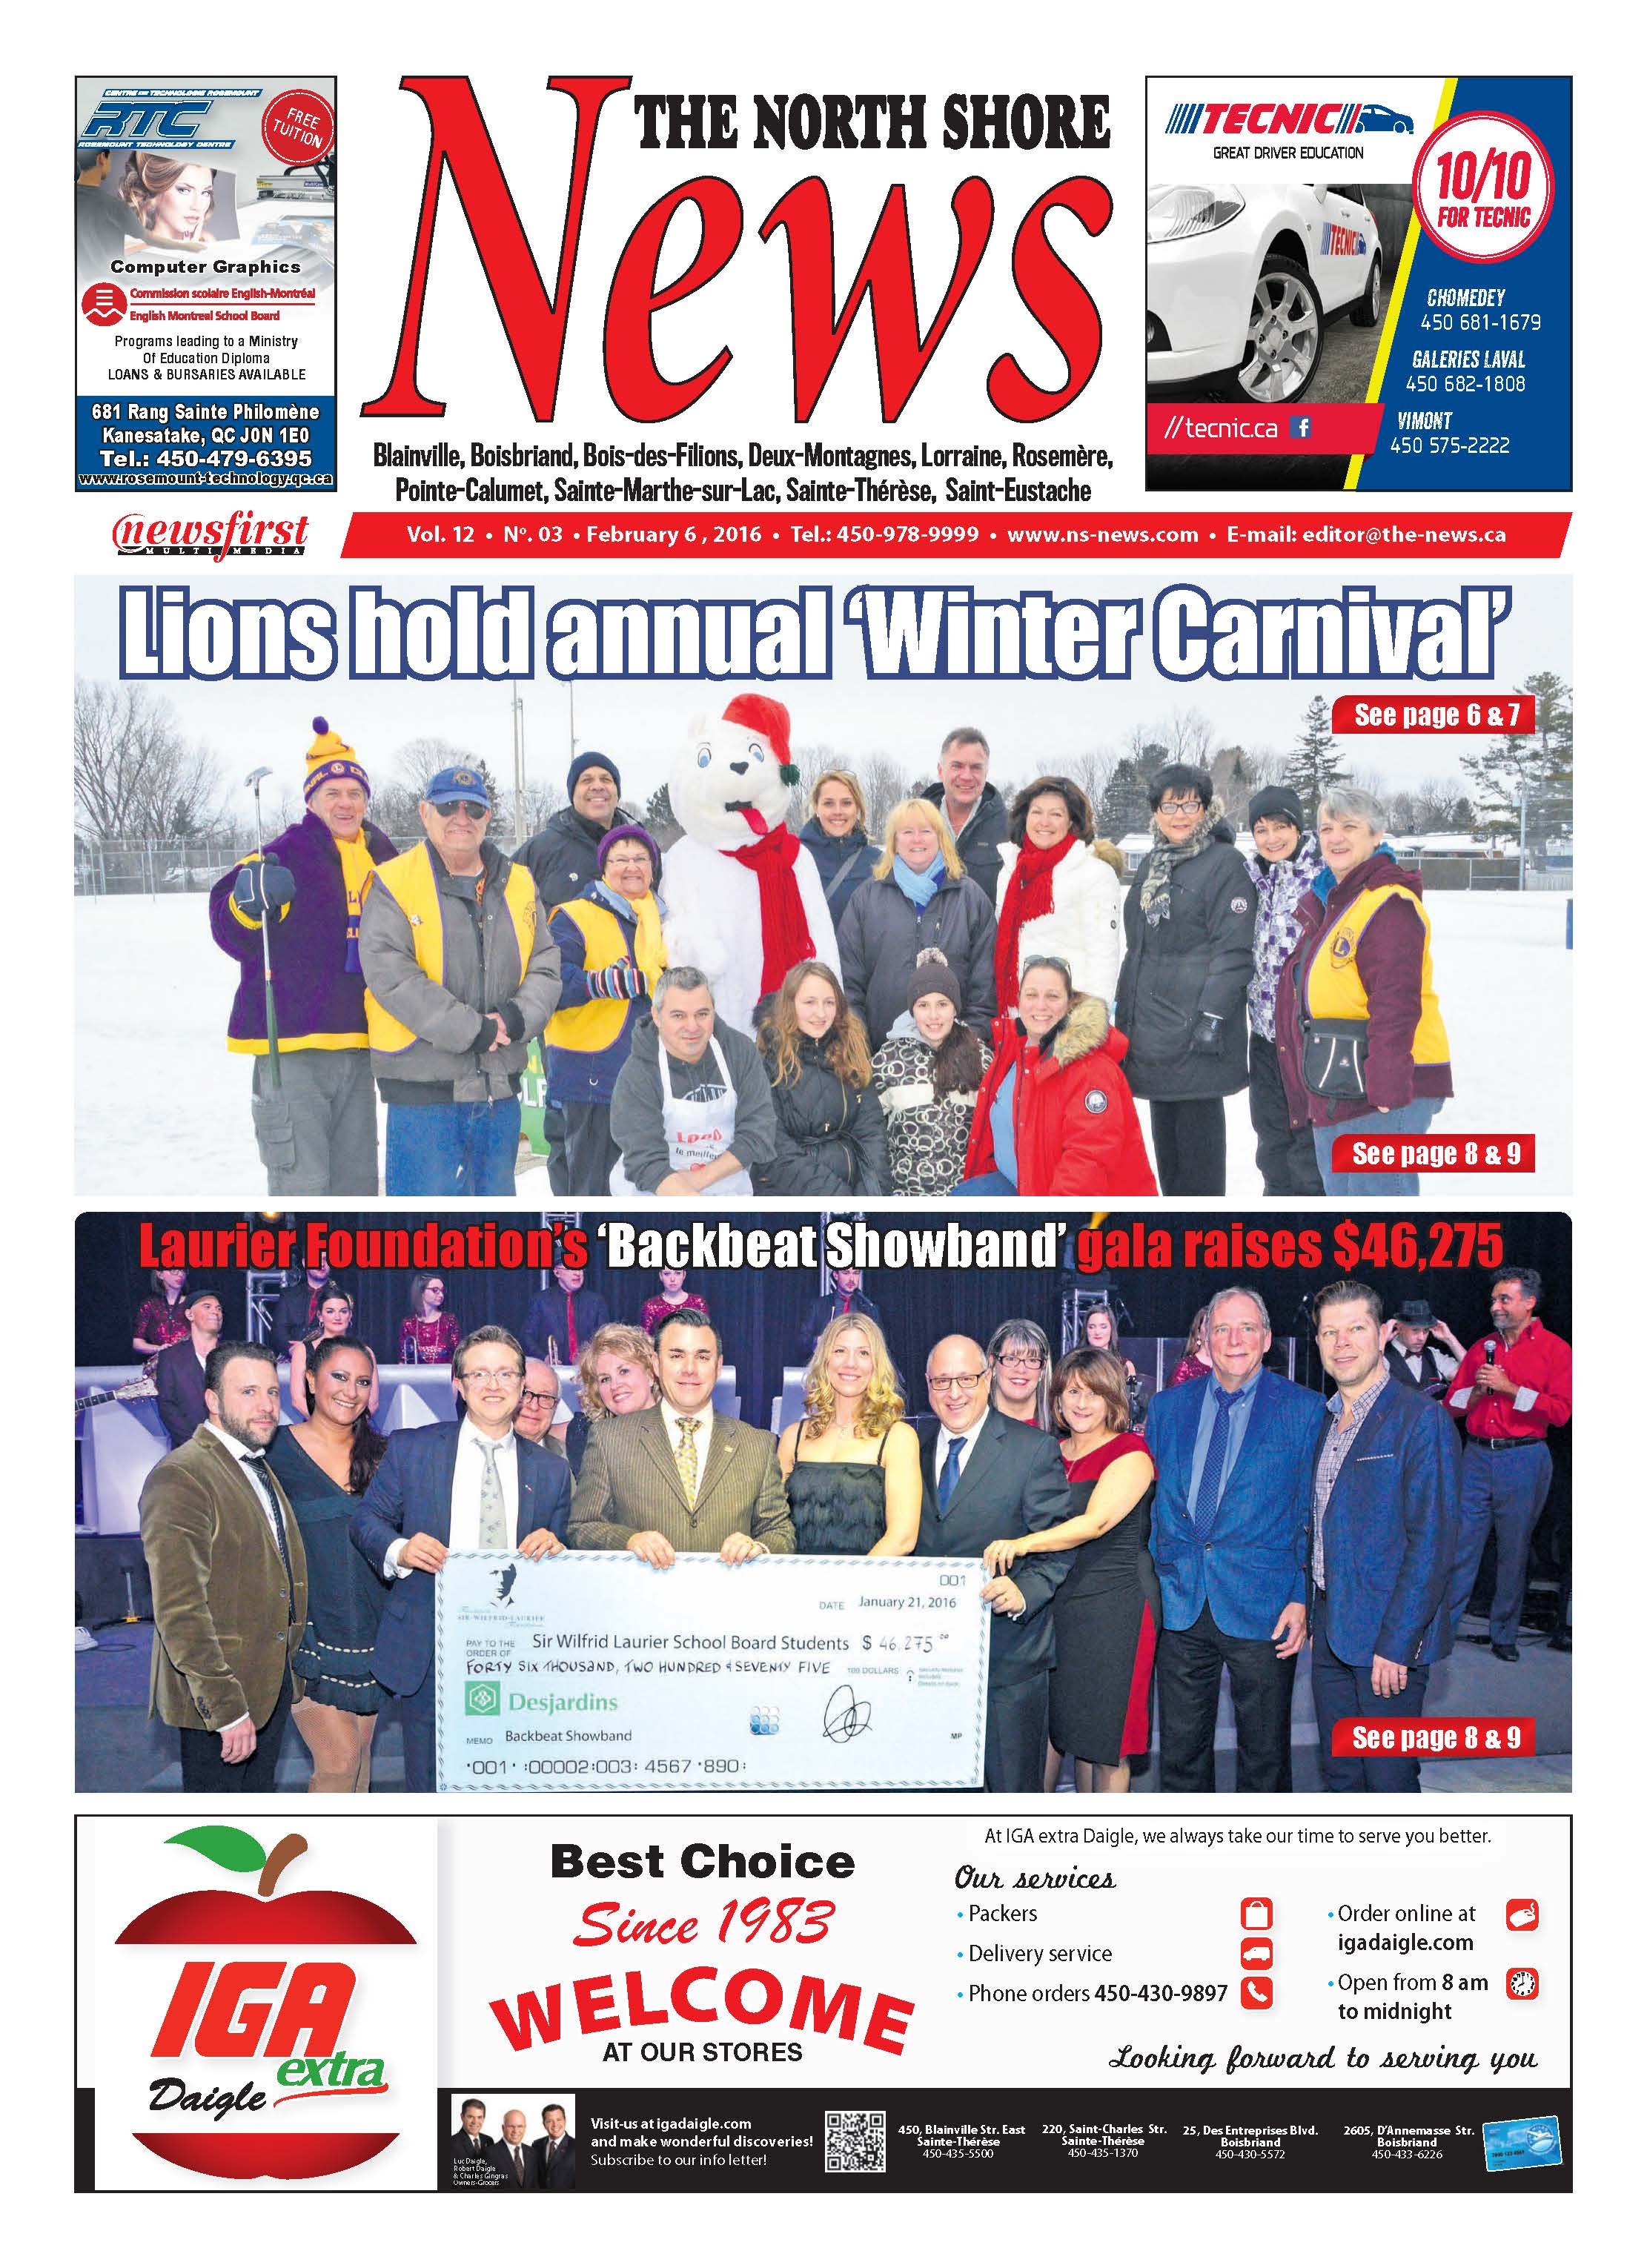 Front page image of the North Shore News Volume 12-3